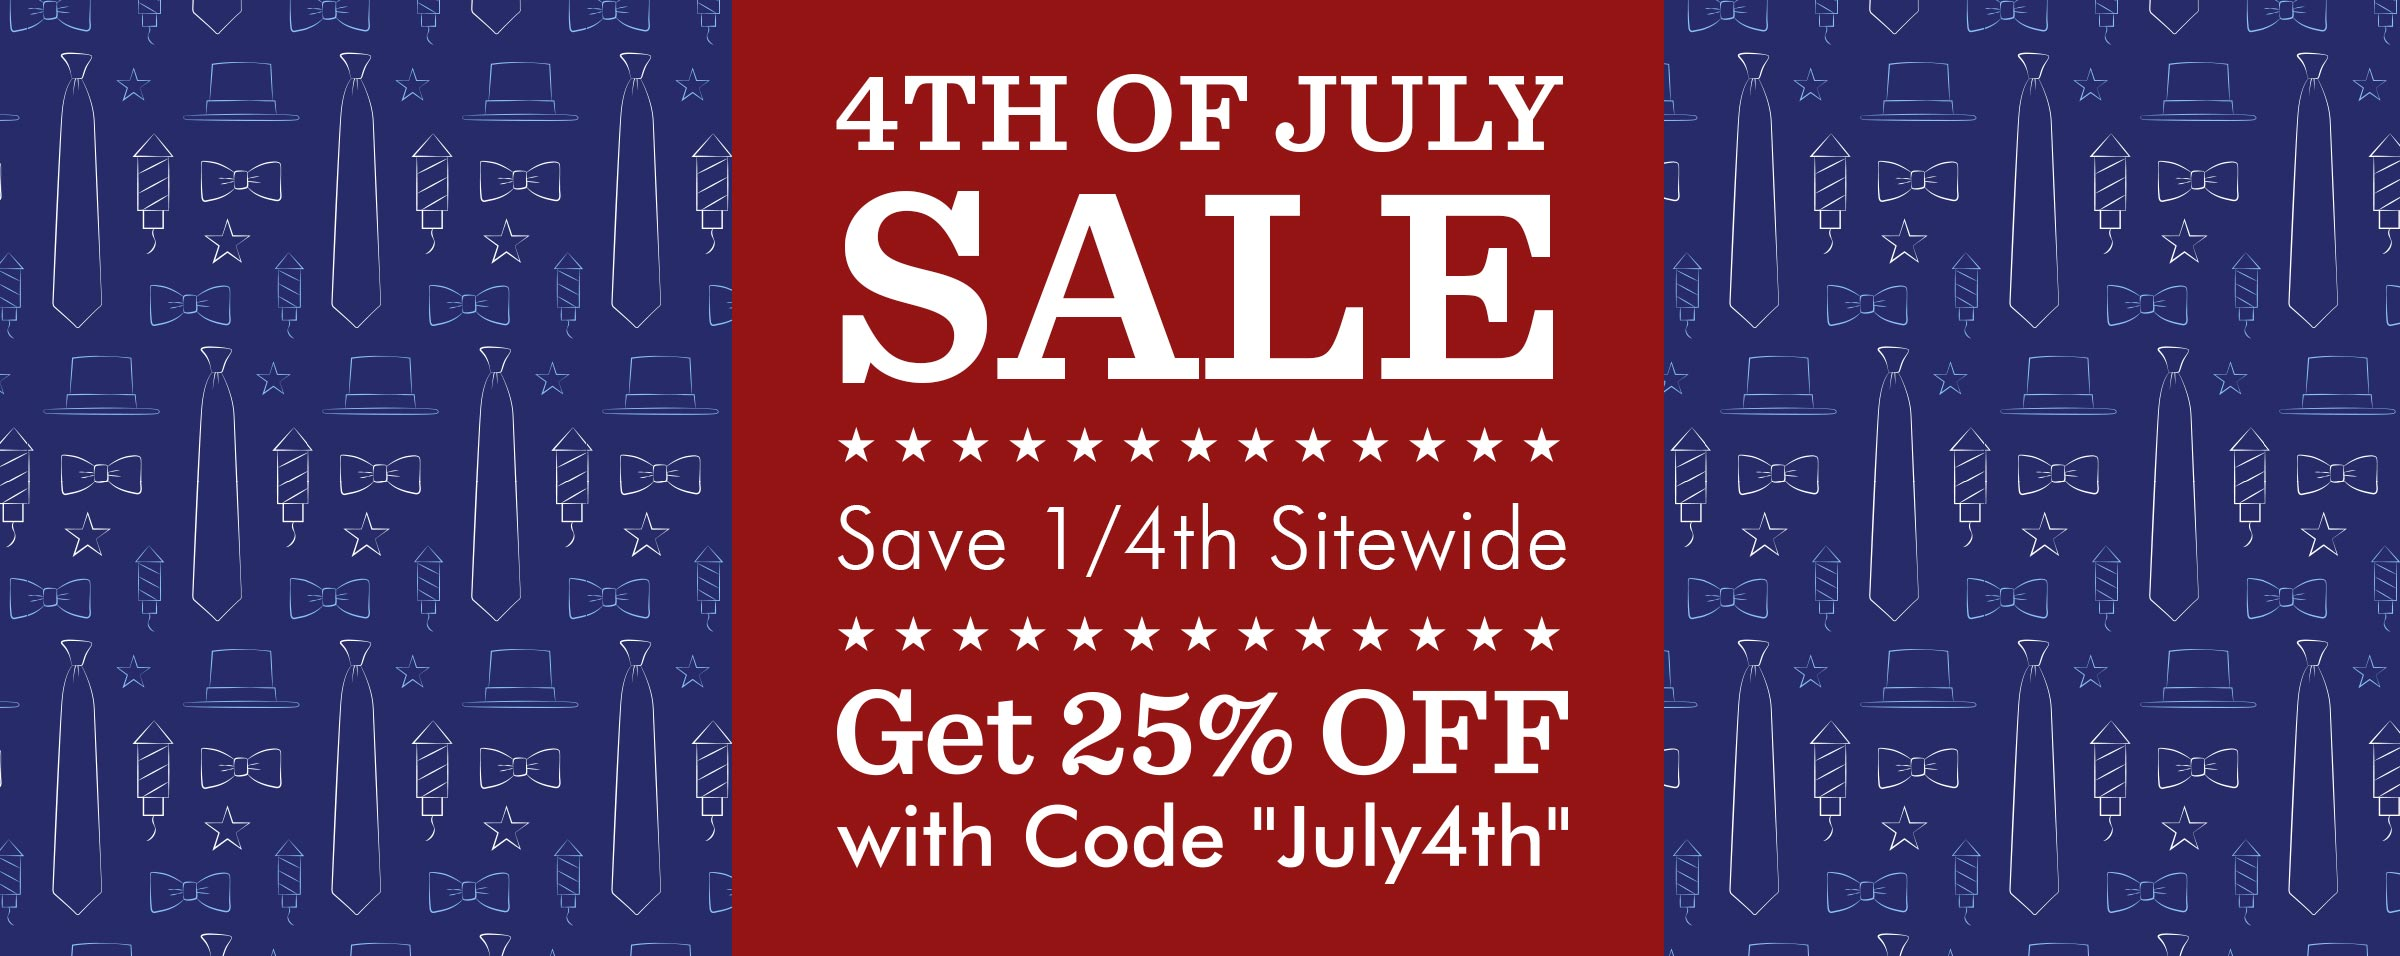 4th of July Sale 2018